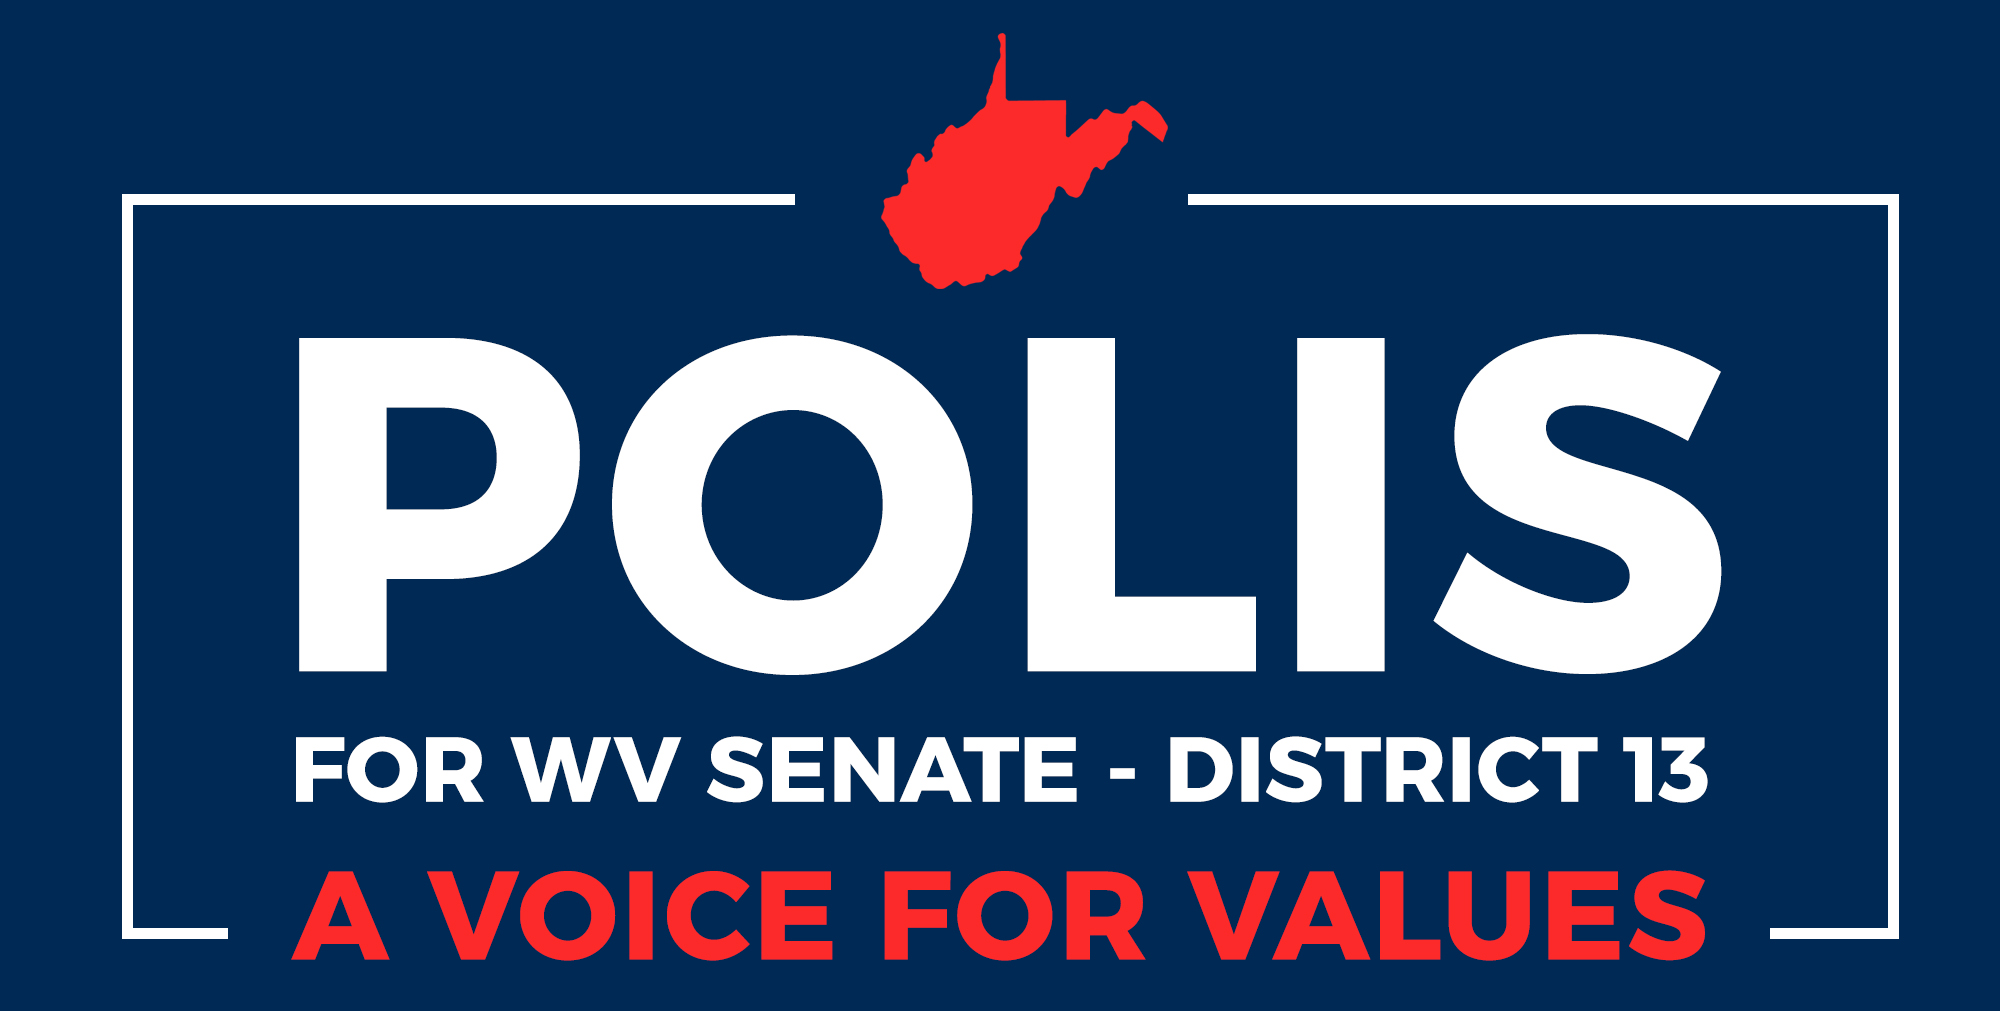 REBECCA POLIS FOR WV SENATE 2020